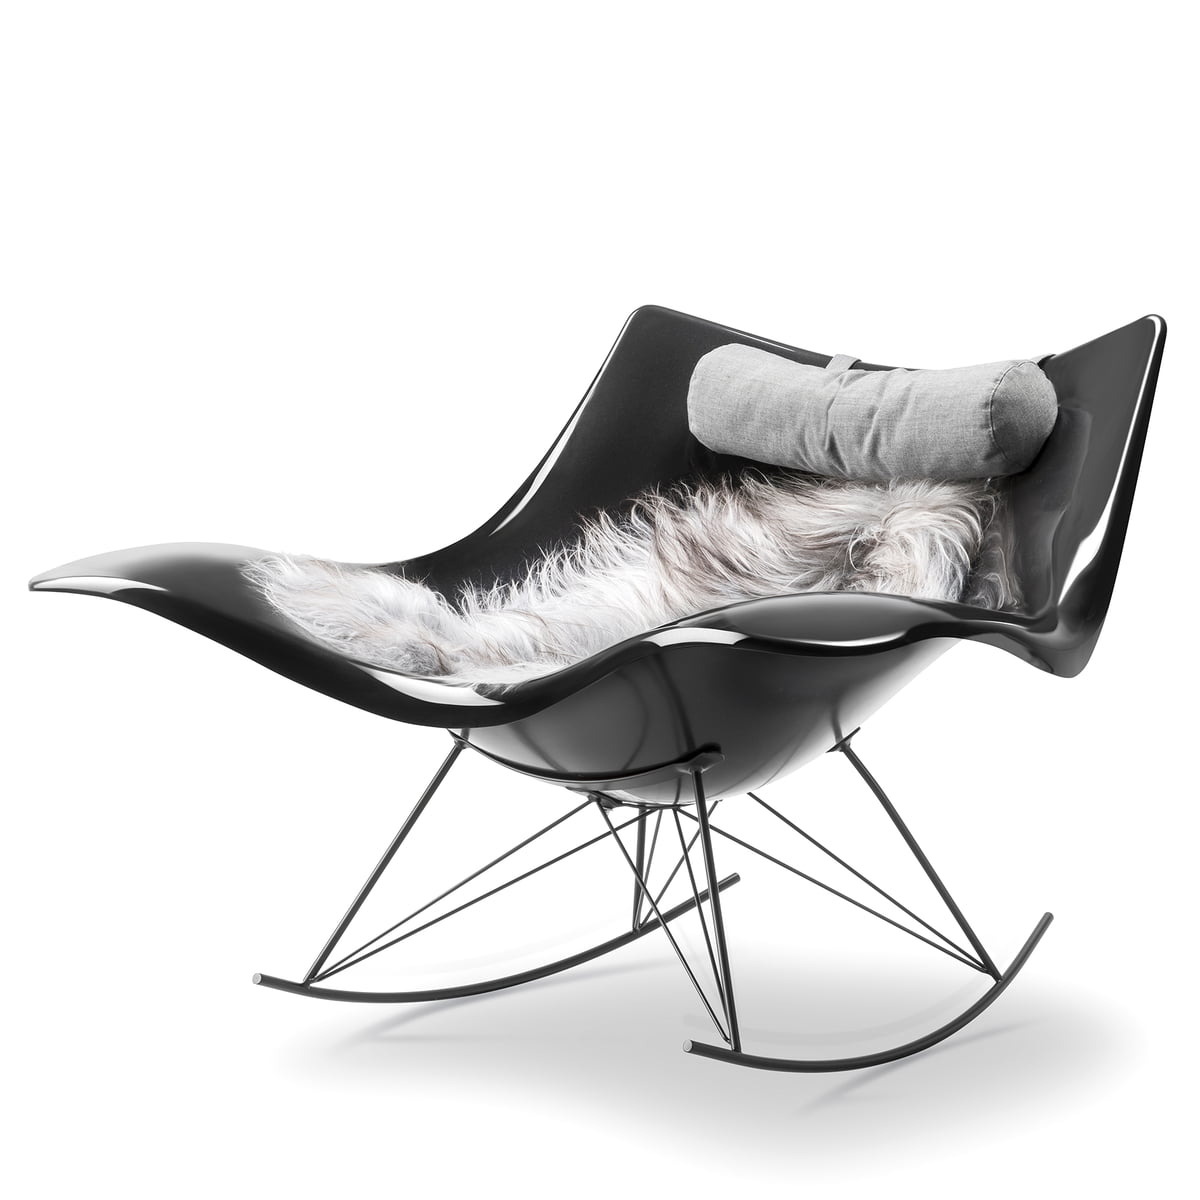 stingray schaukelstuhl von fredericia im shop. Black Bedroom Furniture Sets. Home Design Ideas